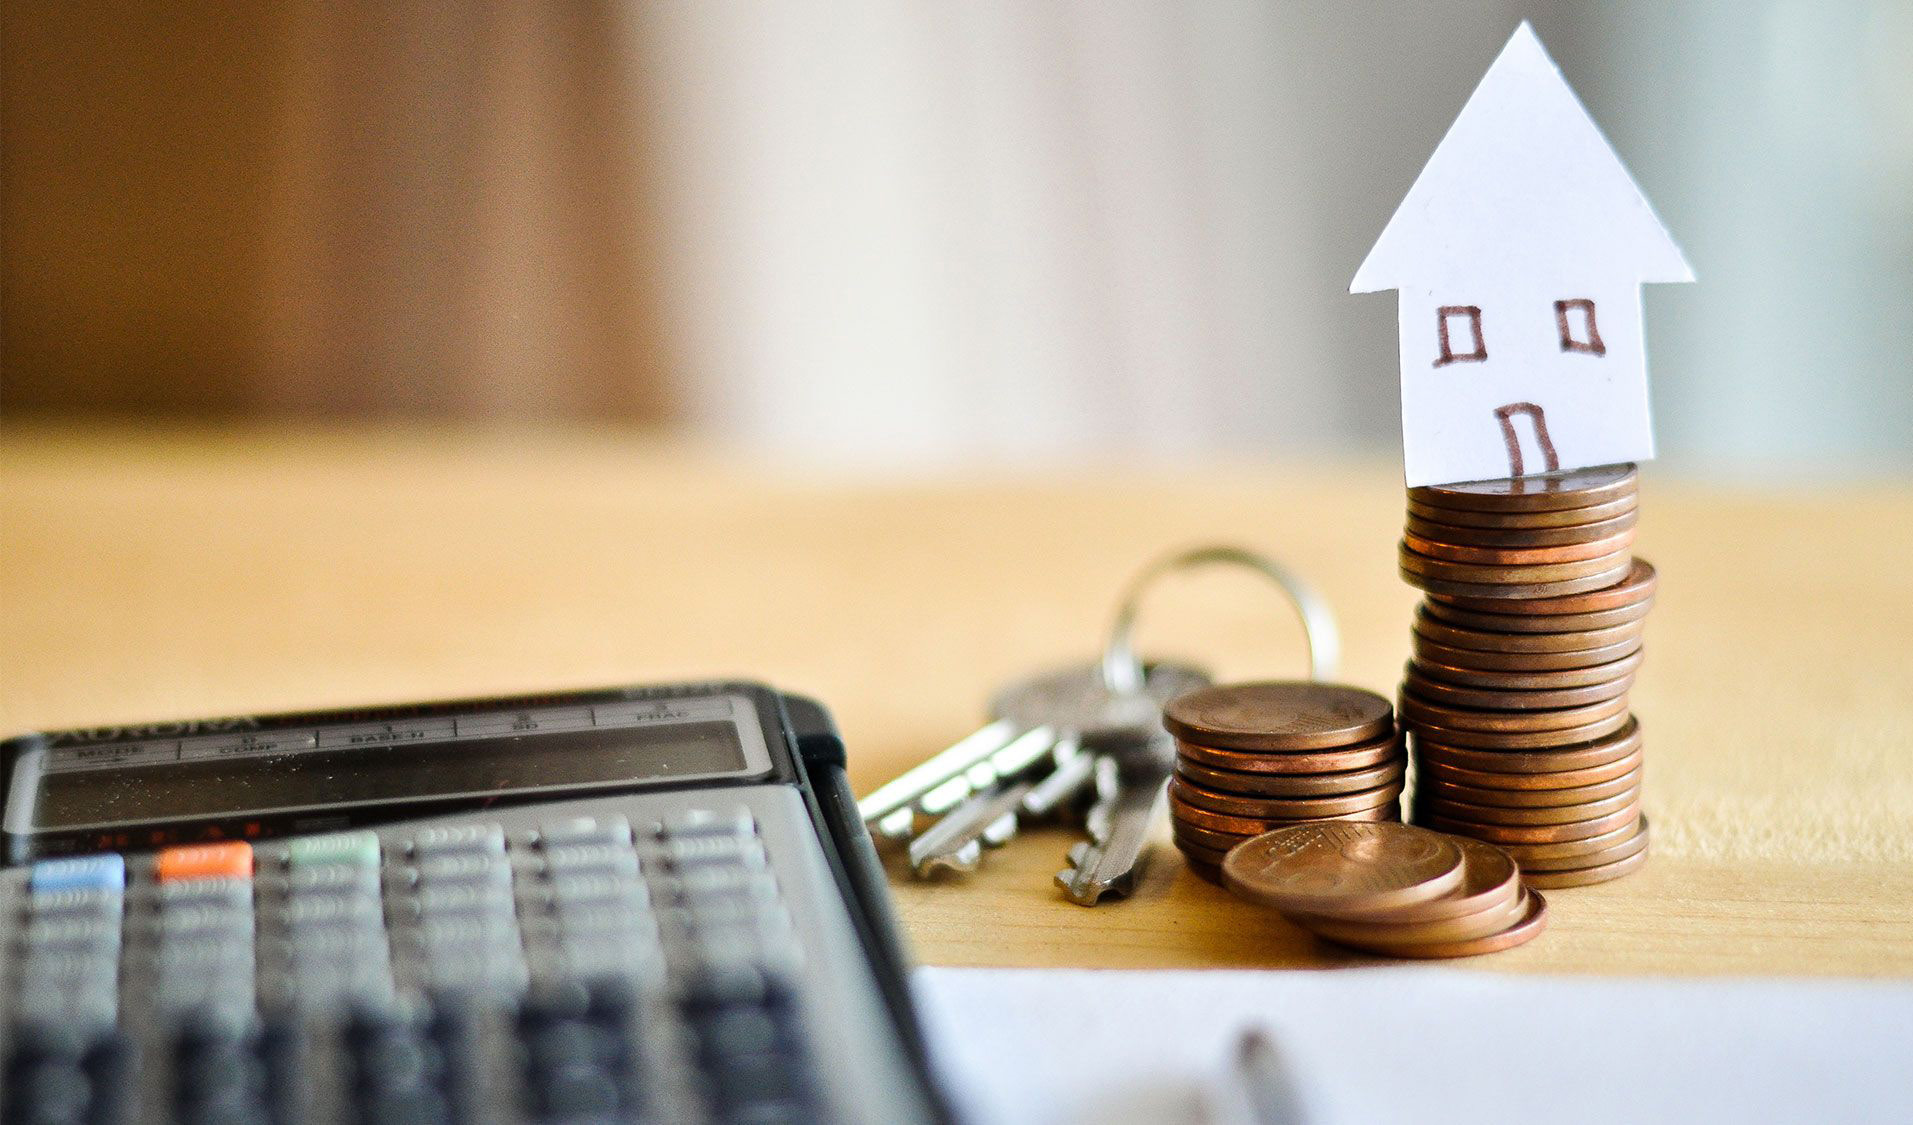 The Chancellor's budget & the implications for the property market